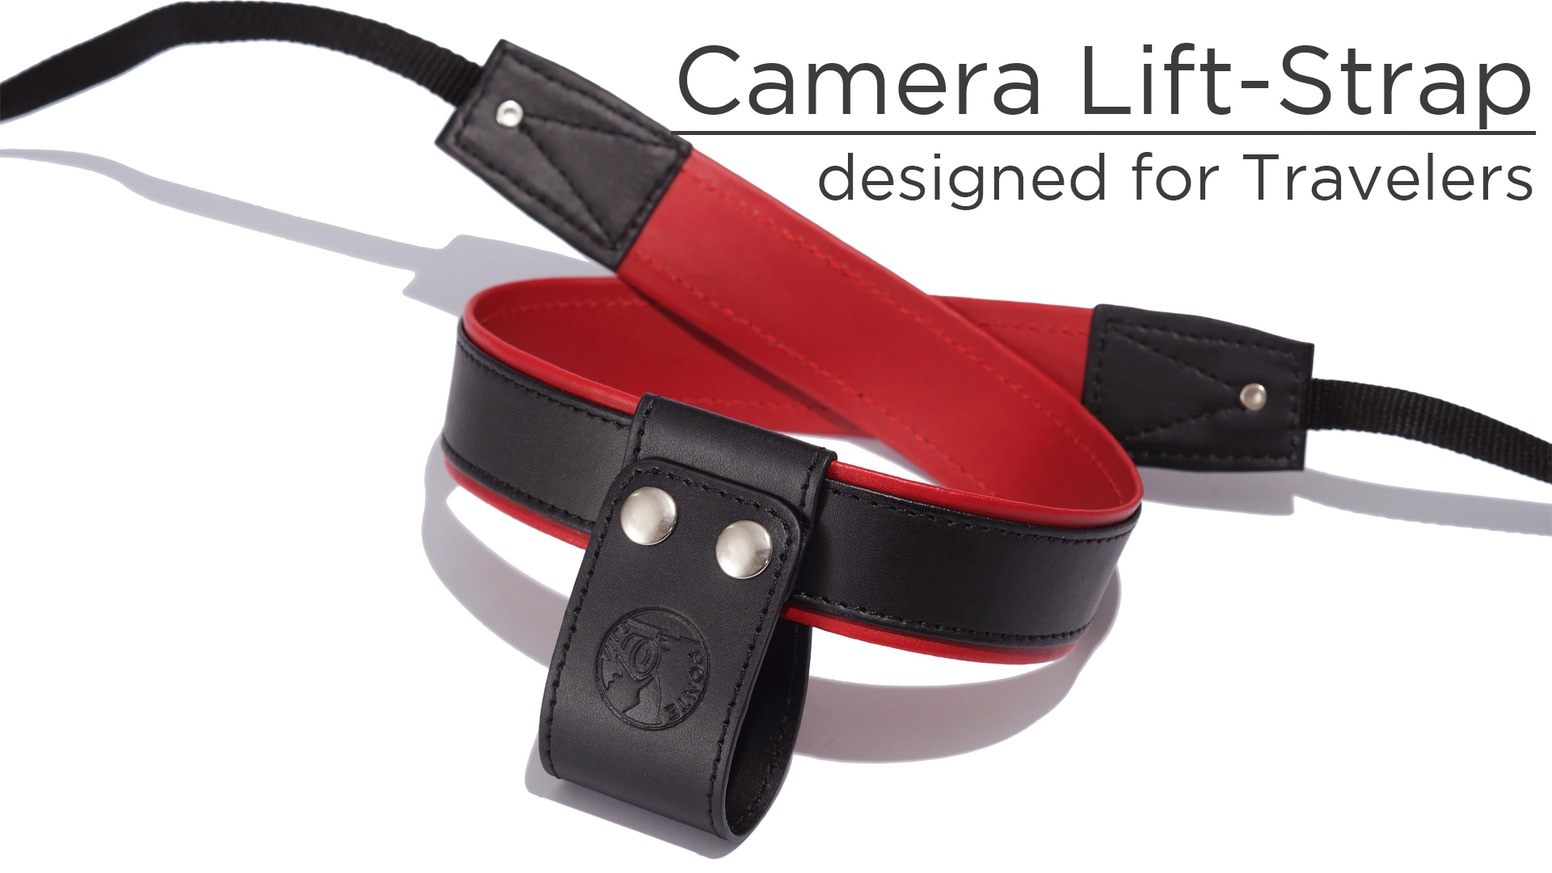 Feel bulky cameras being weightless! An innovative Camera Strap that frees your neck from strain. Get yours now!